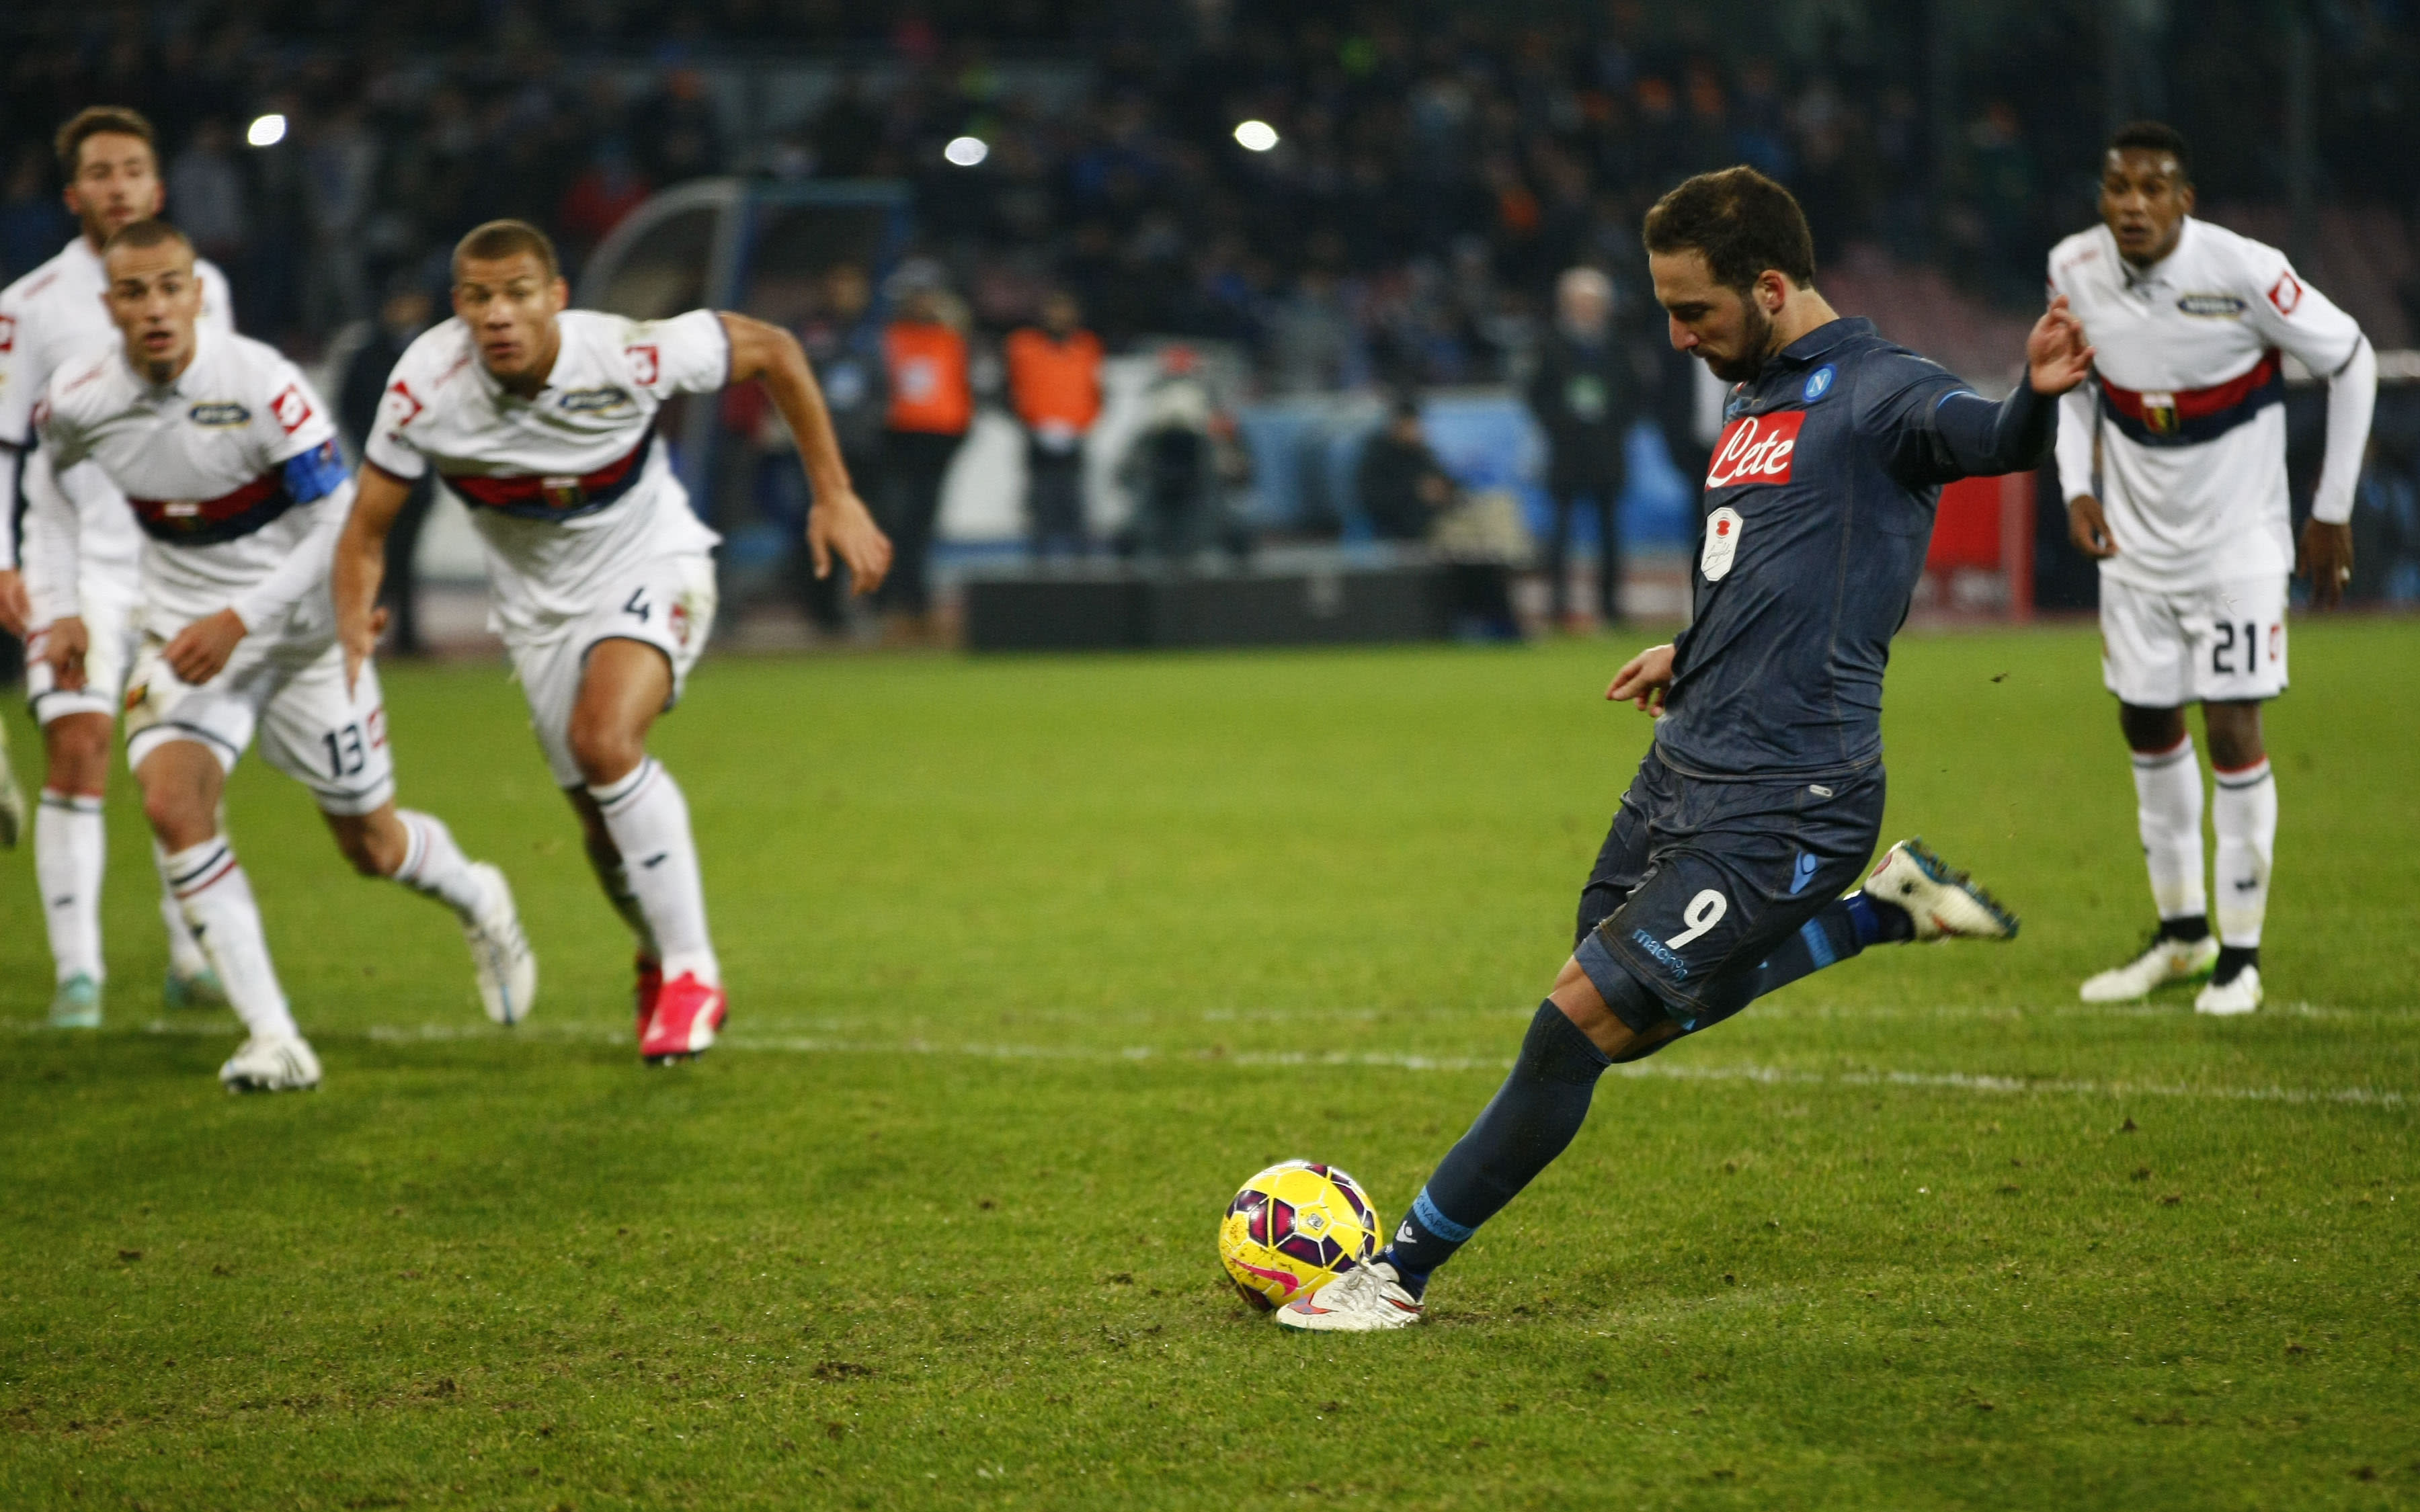 Dubious Higuain brace sees Napoli up to third